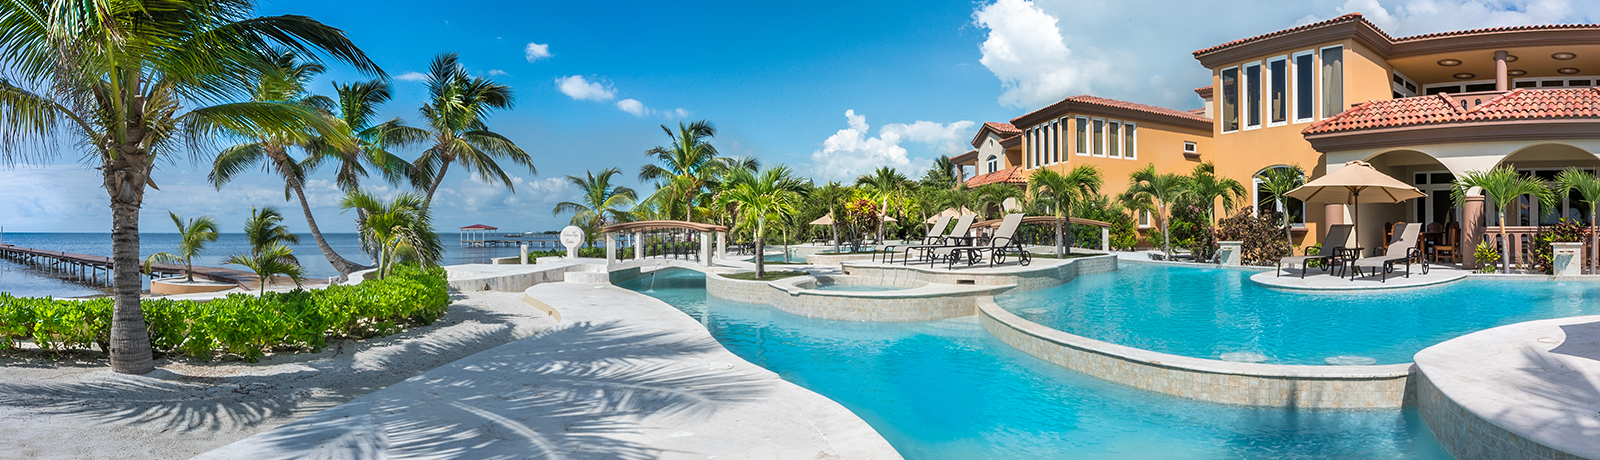 Belizean Cove Estates and Ocean